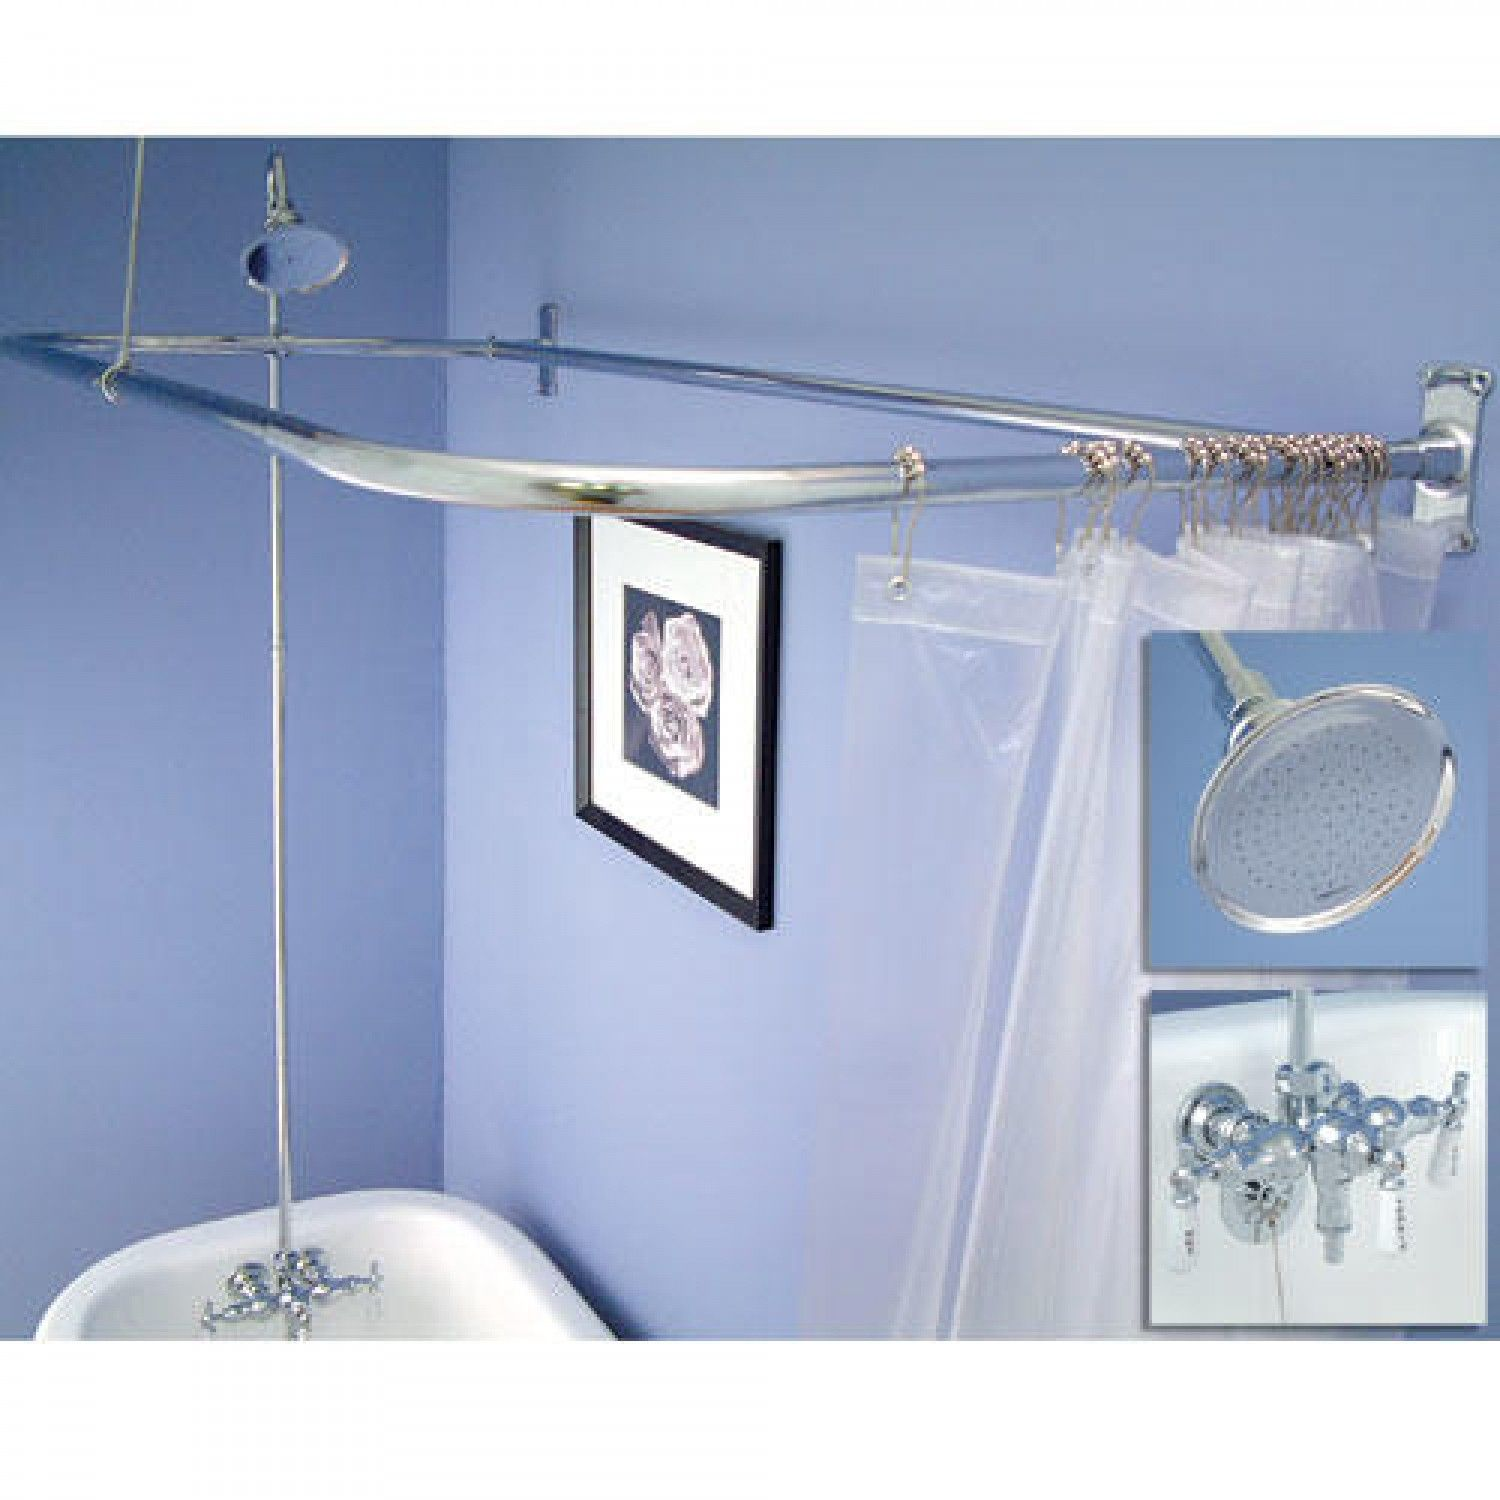 Clawfoot Tub Shower Conversion Kit - D Style Shower Ring   Pinterest ...